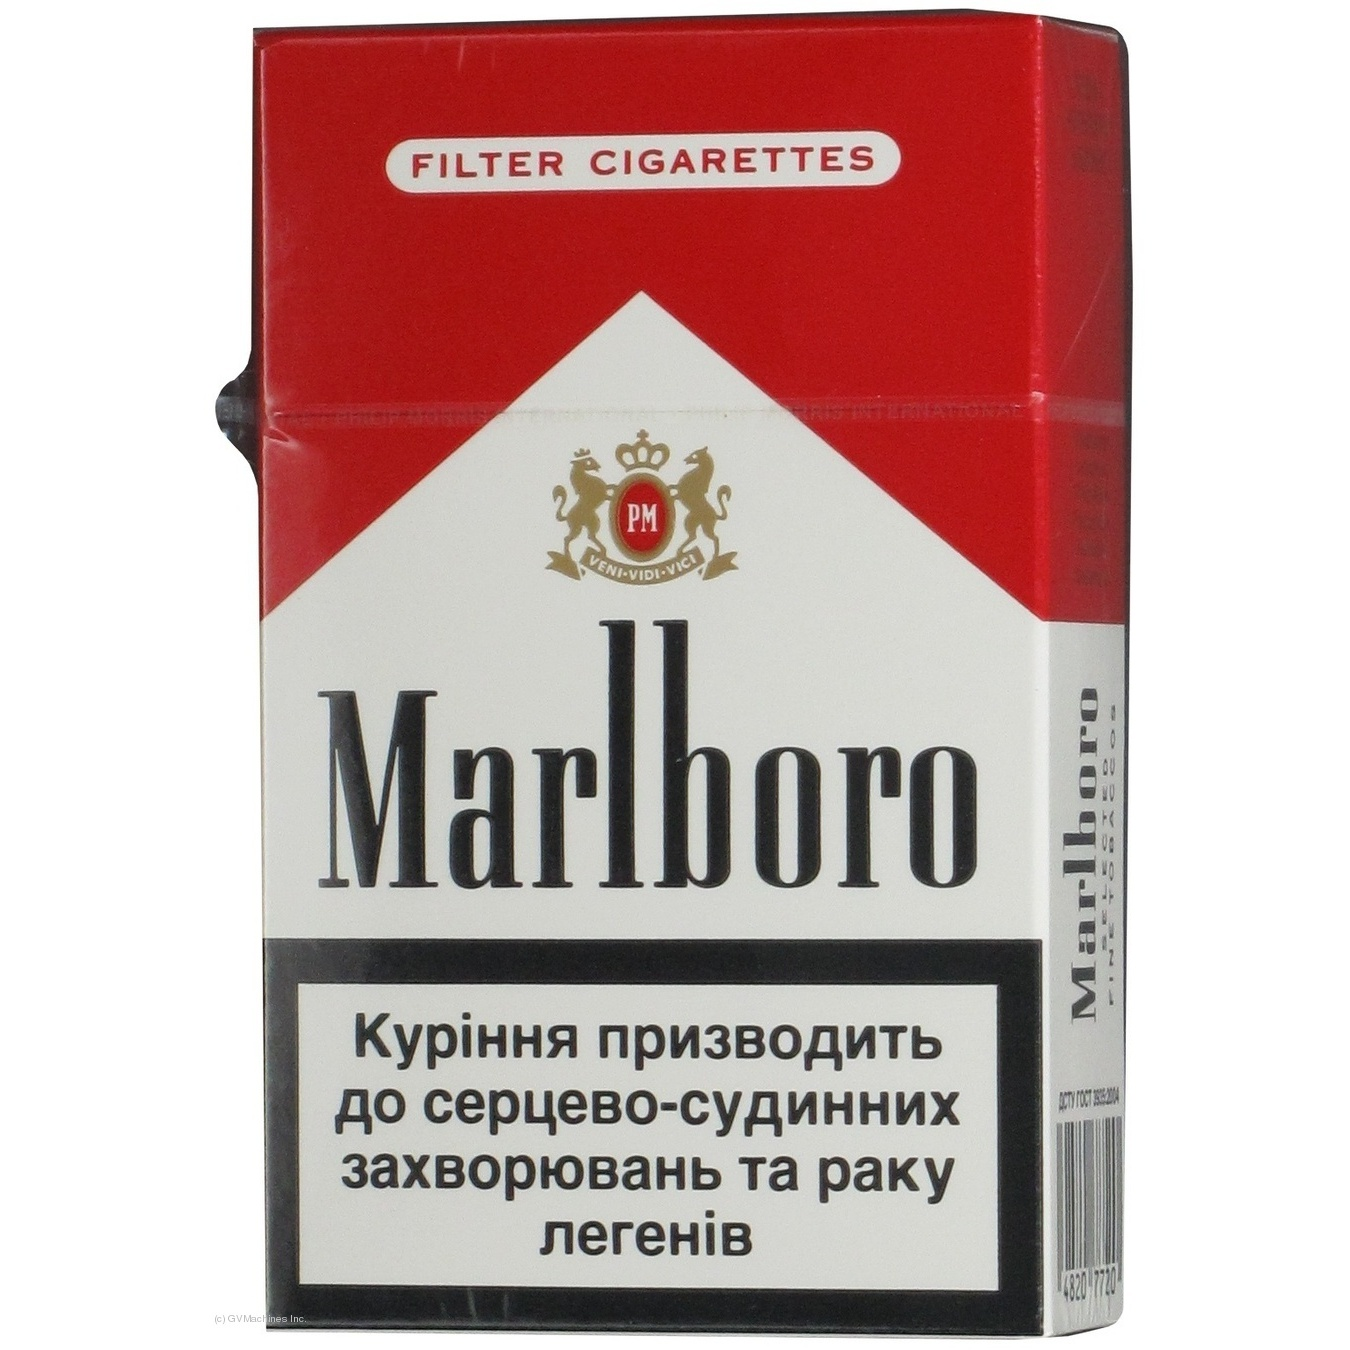 Marlboro discount coupons